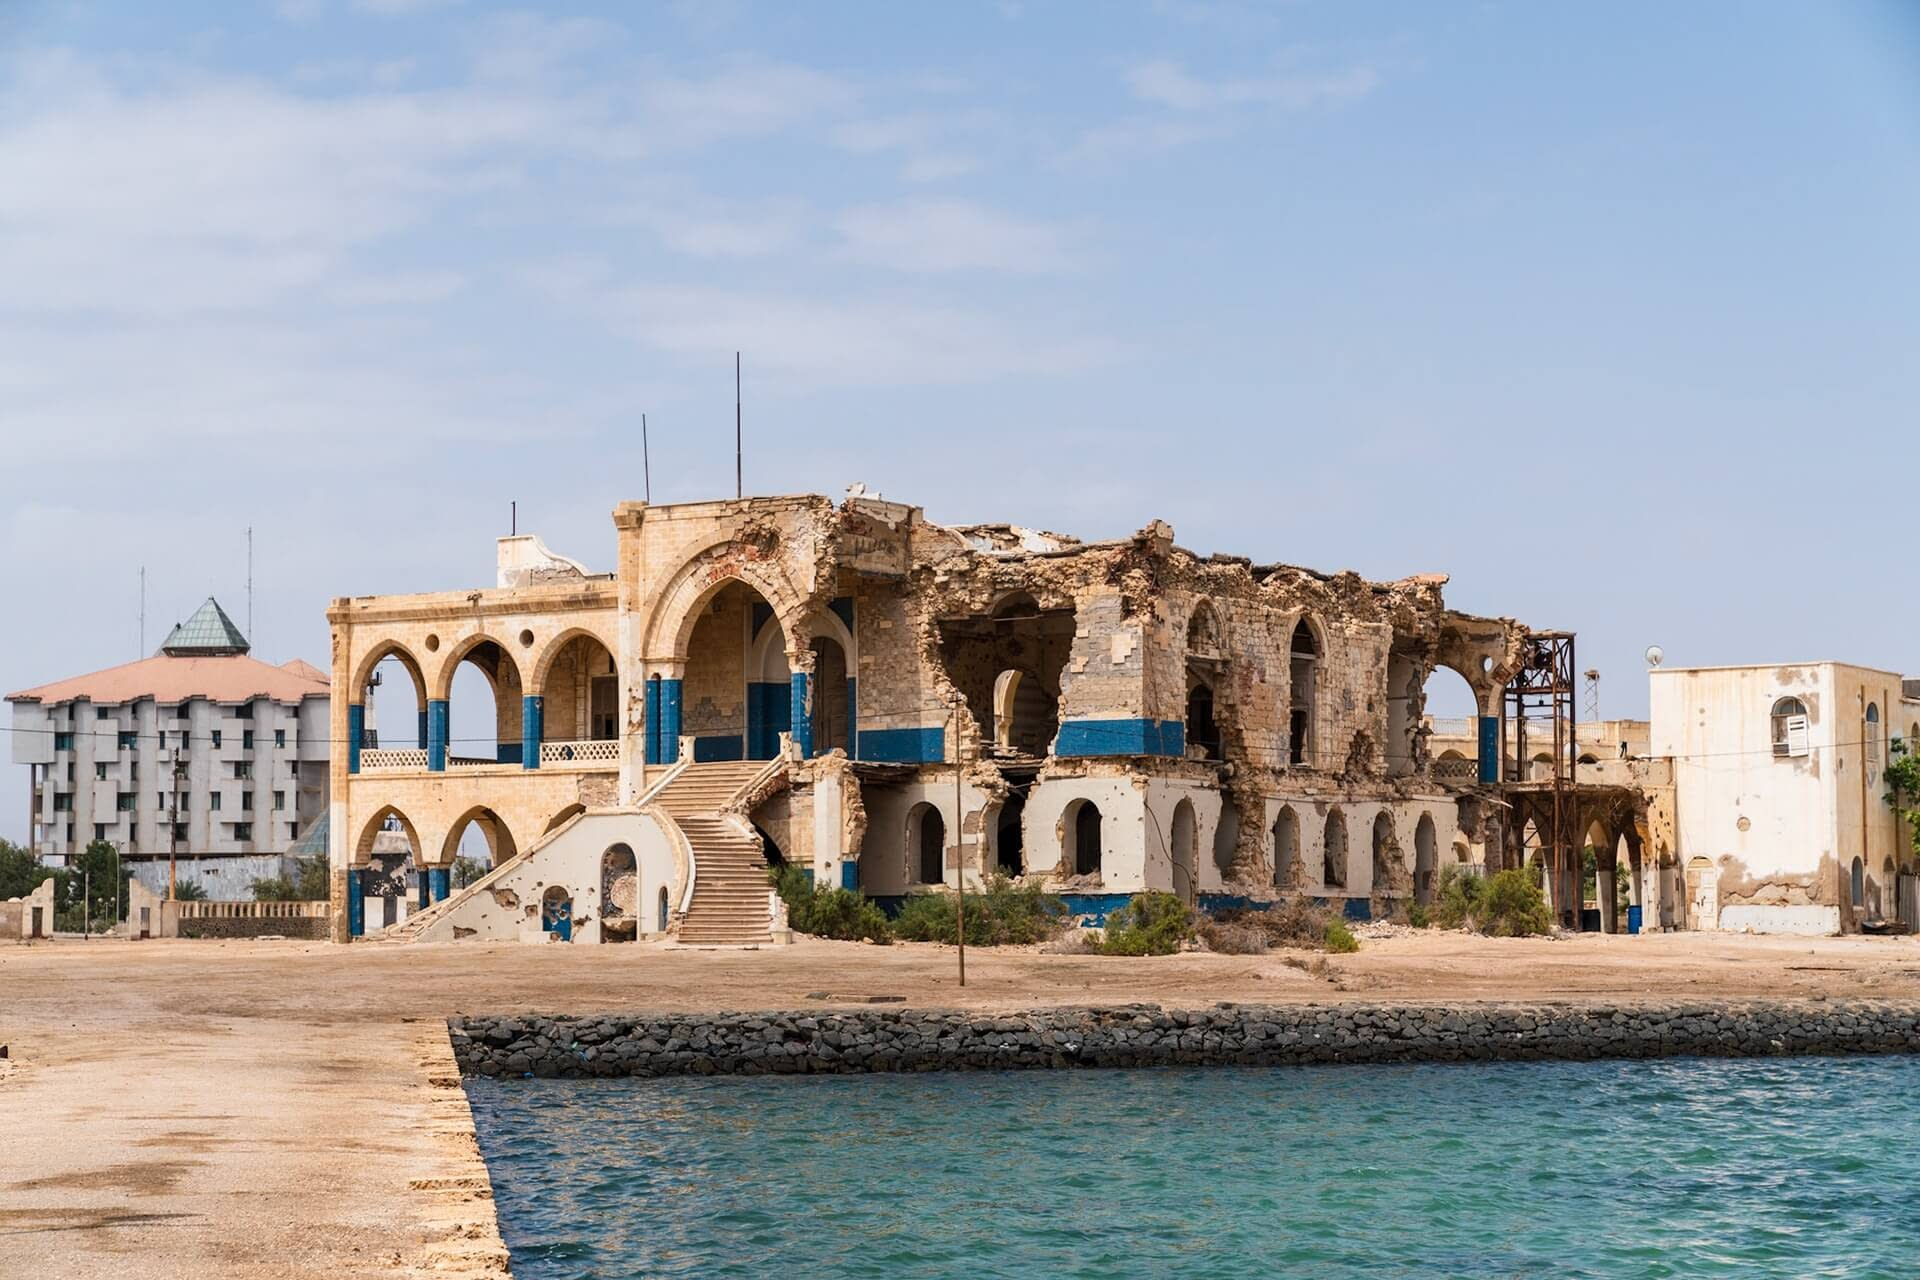 Massawa Haile Selassie old palace -3 Days Tour Asmara - things to see and do in Eritrea